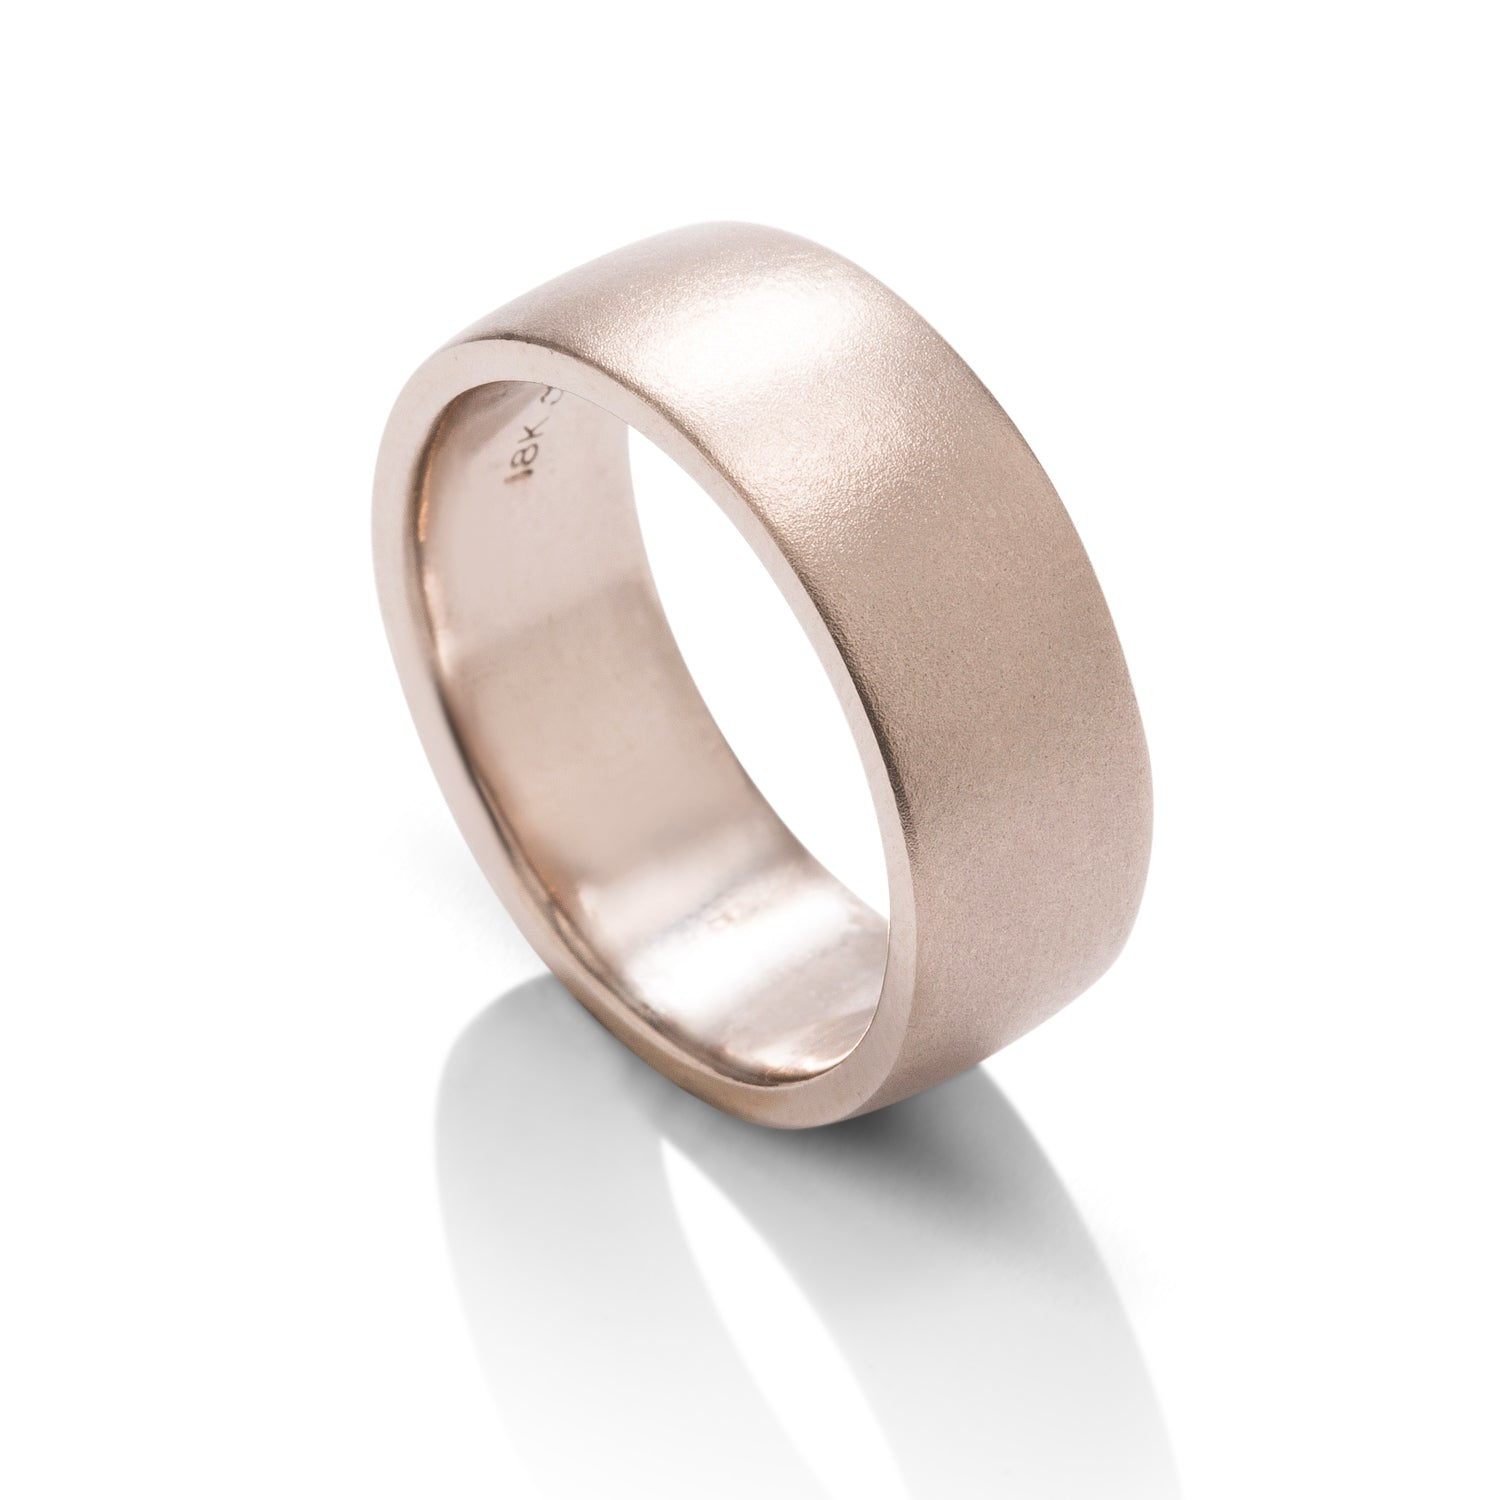 Satin Finish Men's Band - Charles Koll Jewellers